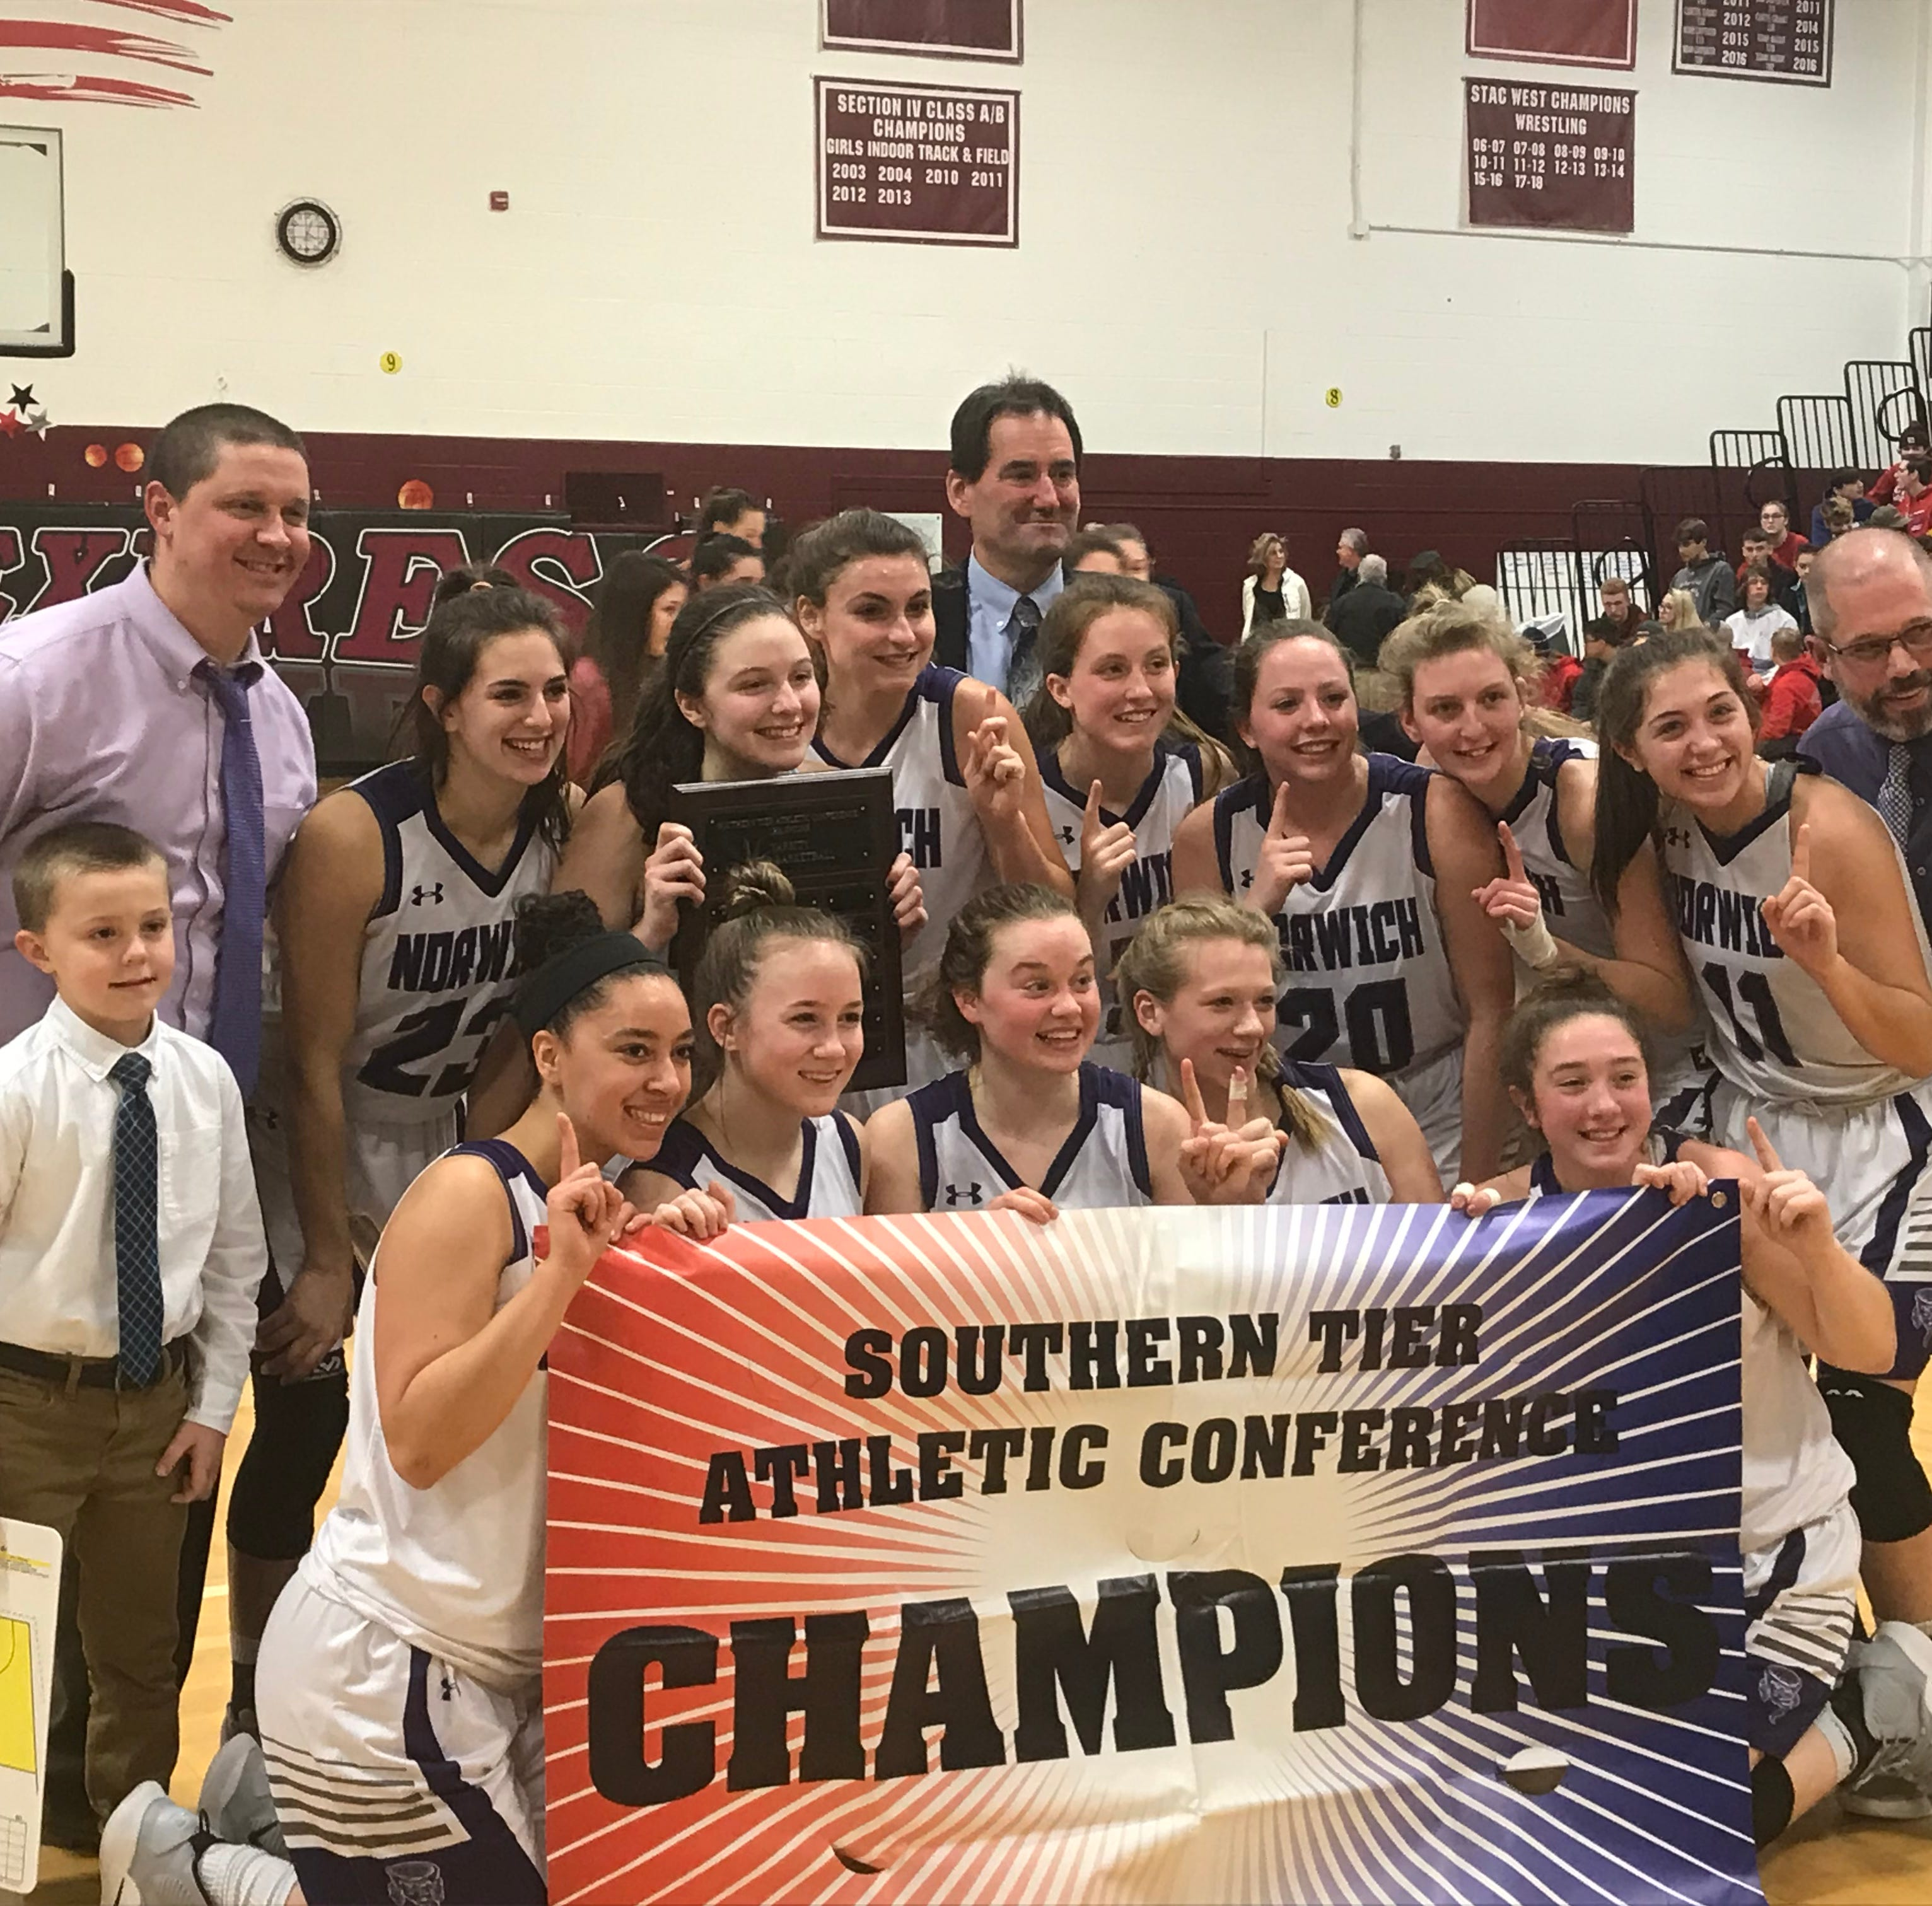 Norwich's girls basketball team celebrates its first Southern Tier Athletic Conference title since 2001 after a 74-39 victory over Owego on Friday at Elmira High.